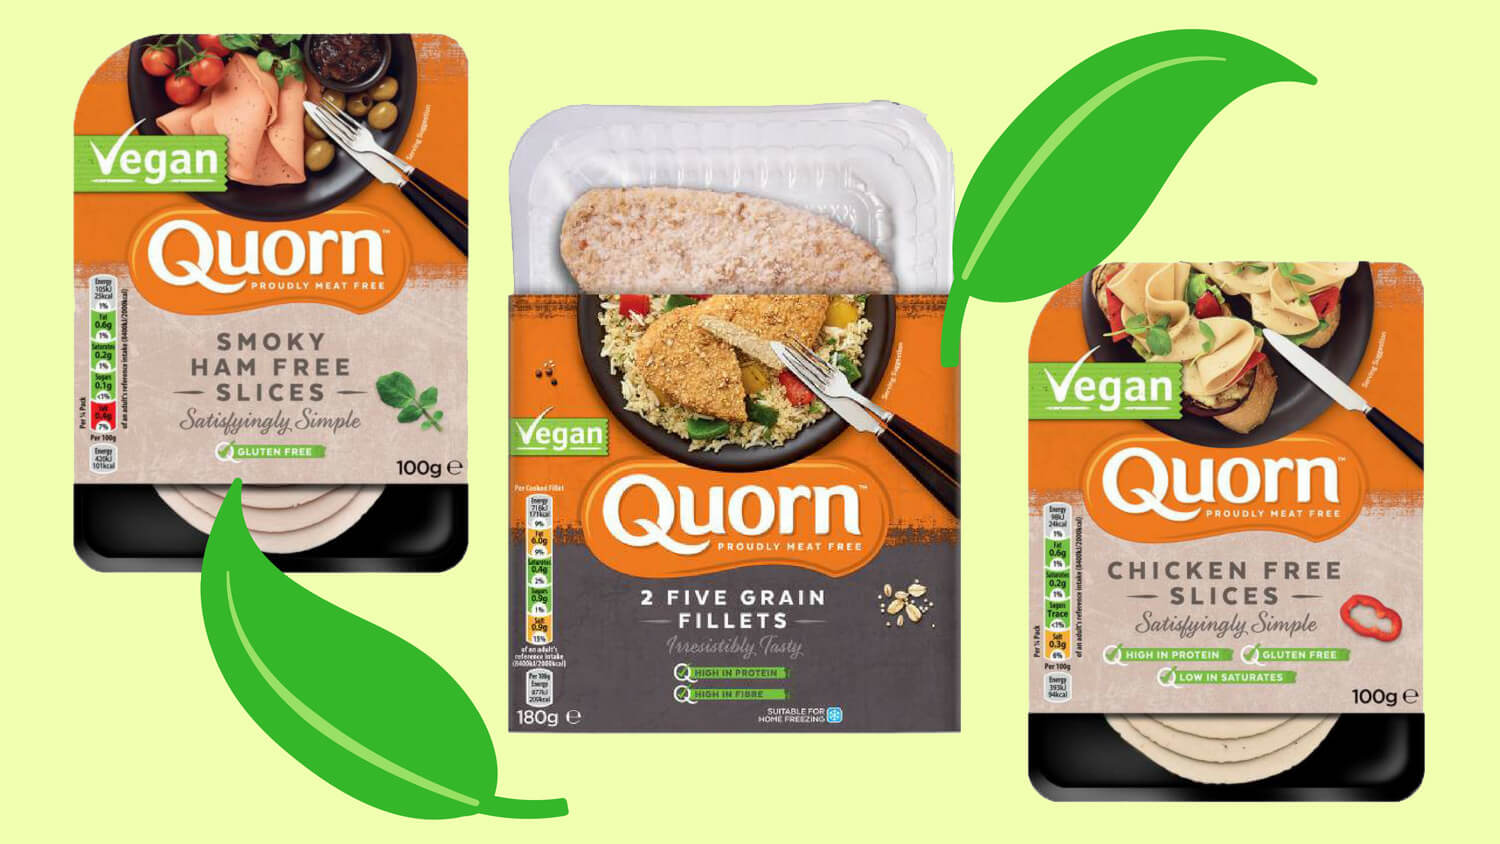 Vegetarian Meat Brand Quorn Invests £7 Million into R&D to Develop 'Bleeding' Vegan Burgers